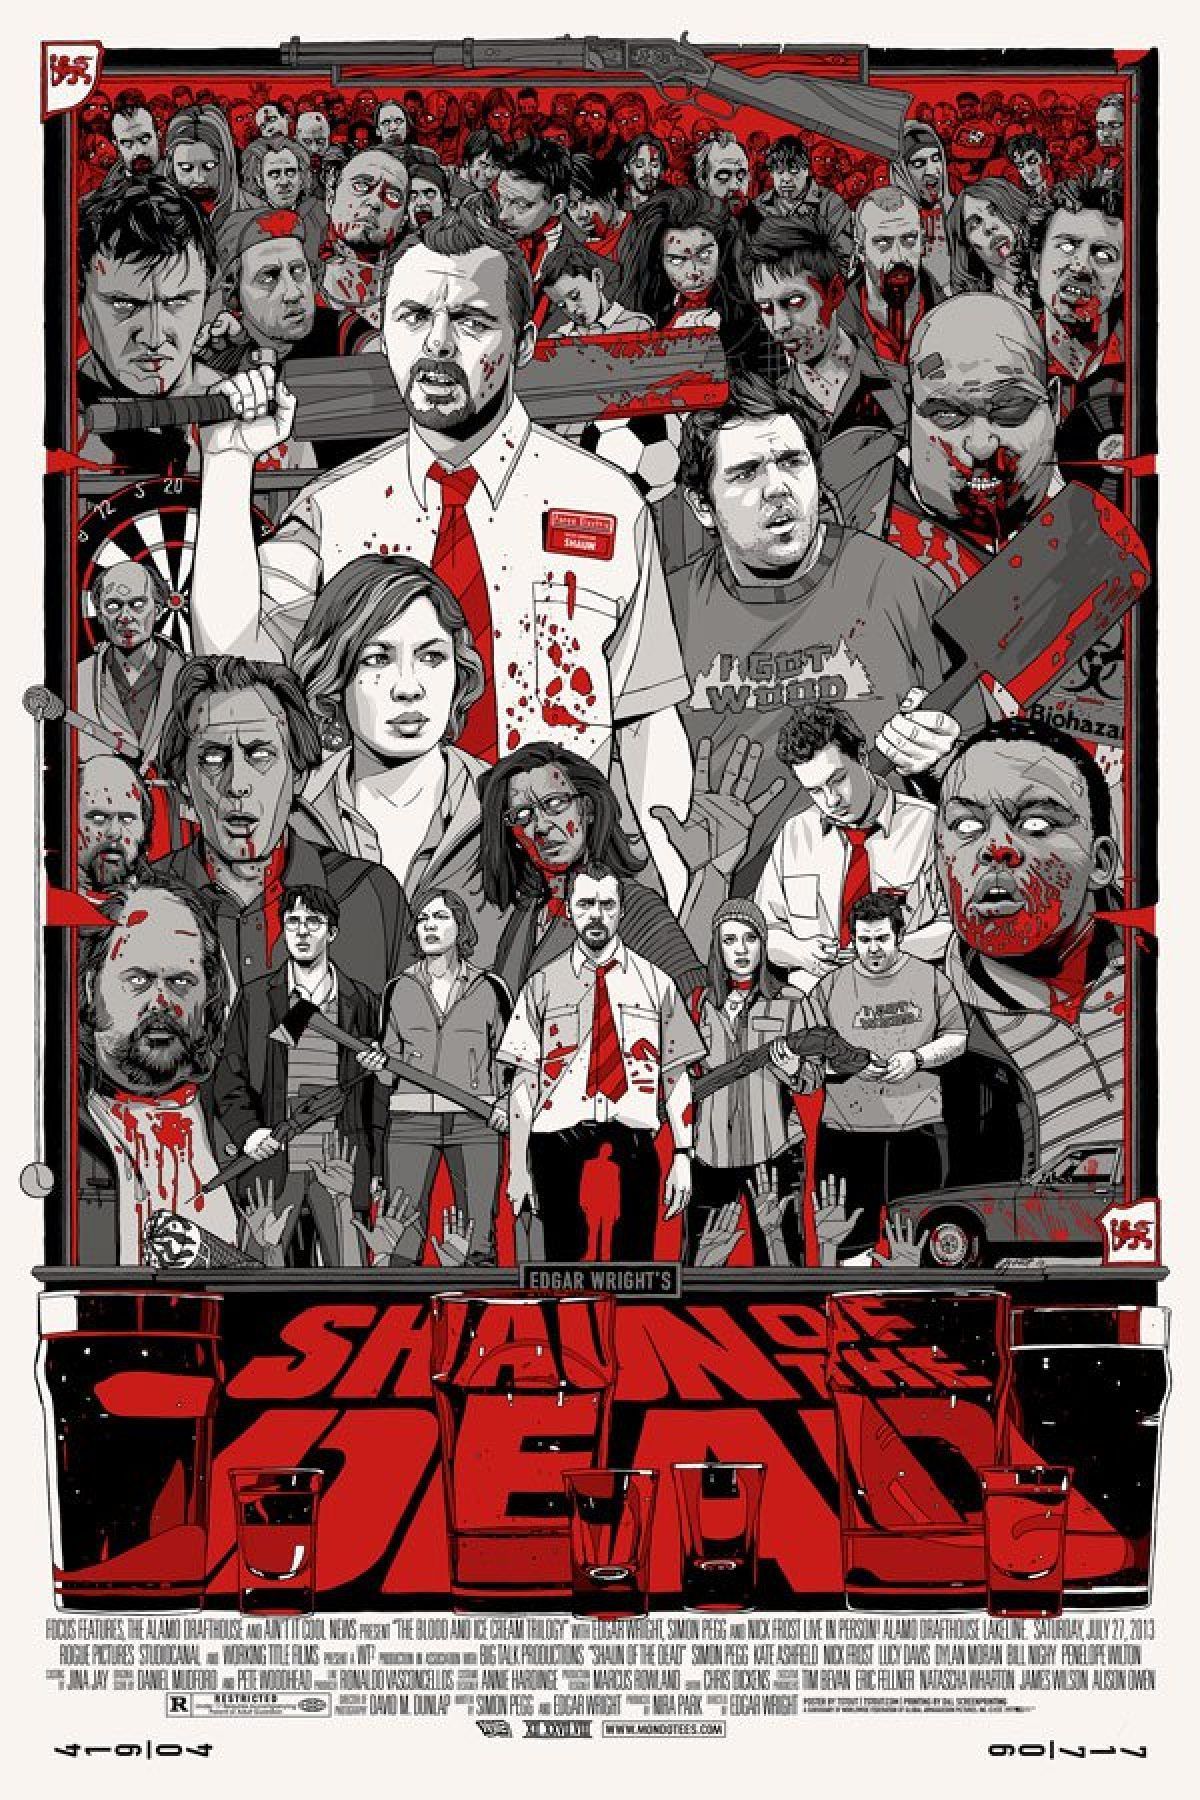 0305c57f6c033872a16aae97a977d397 movie poster drawing shaun of the dead movies tv books Shaun of the Dead Meme at cos-gaming.co